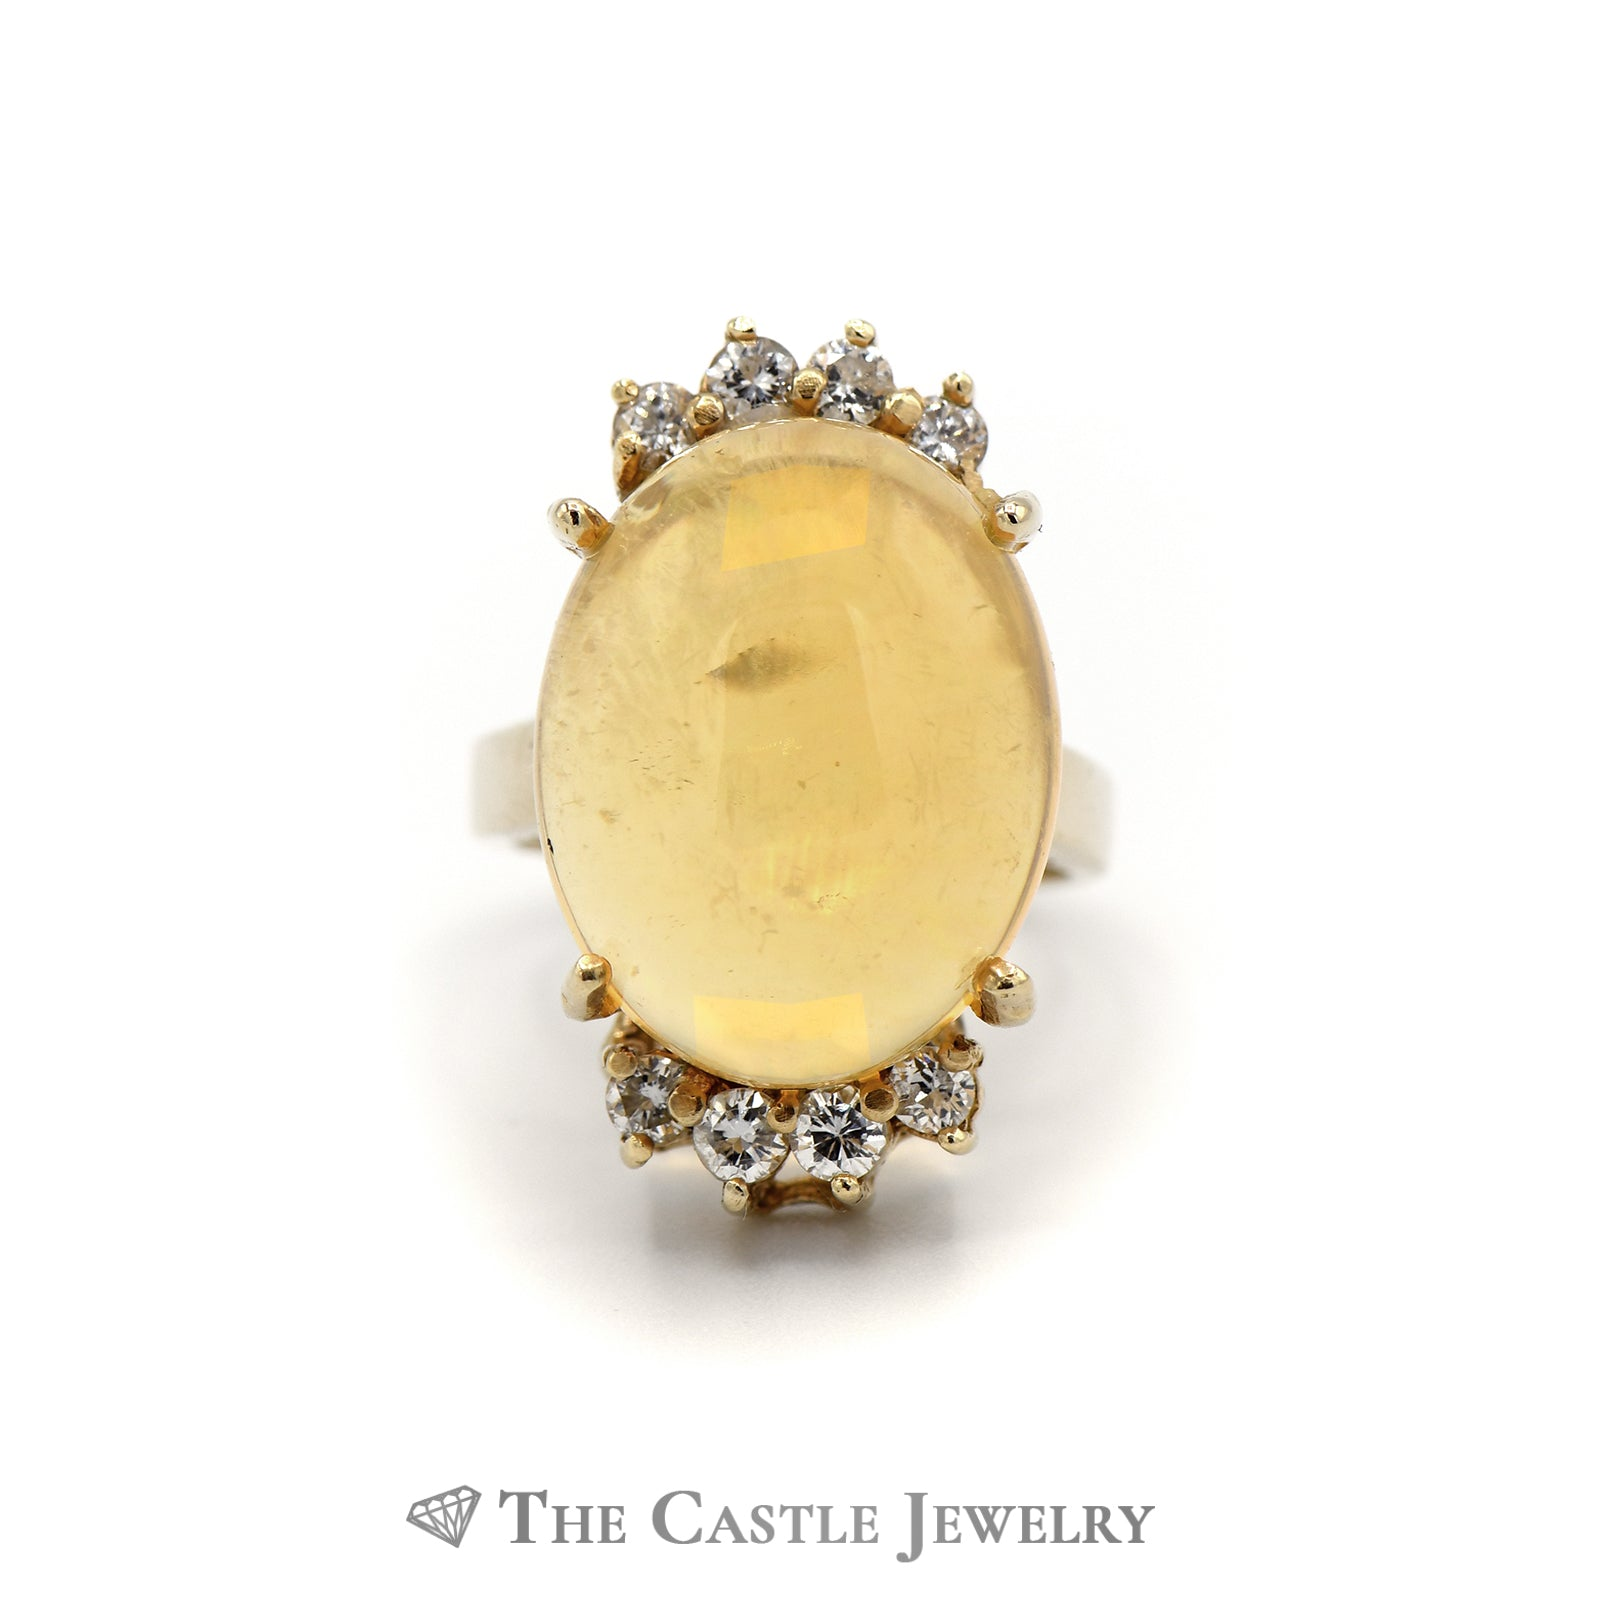 Beautiful Oval Yellow Jelly Opal with Round Diamond Accents in 14K Yellow Gold